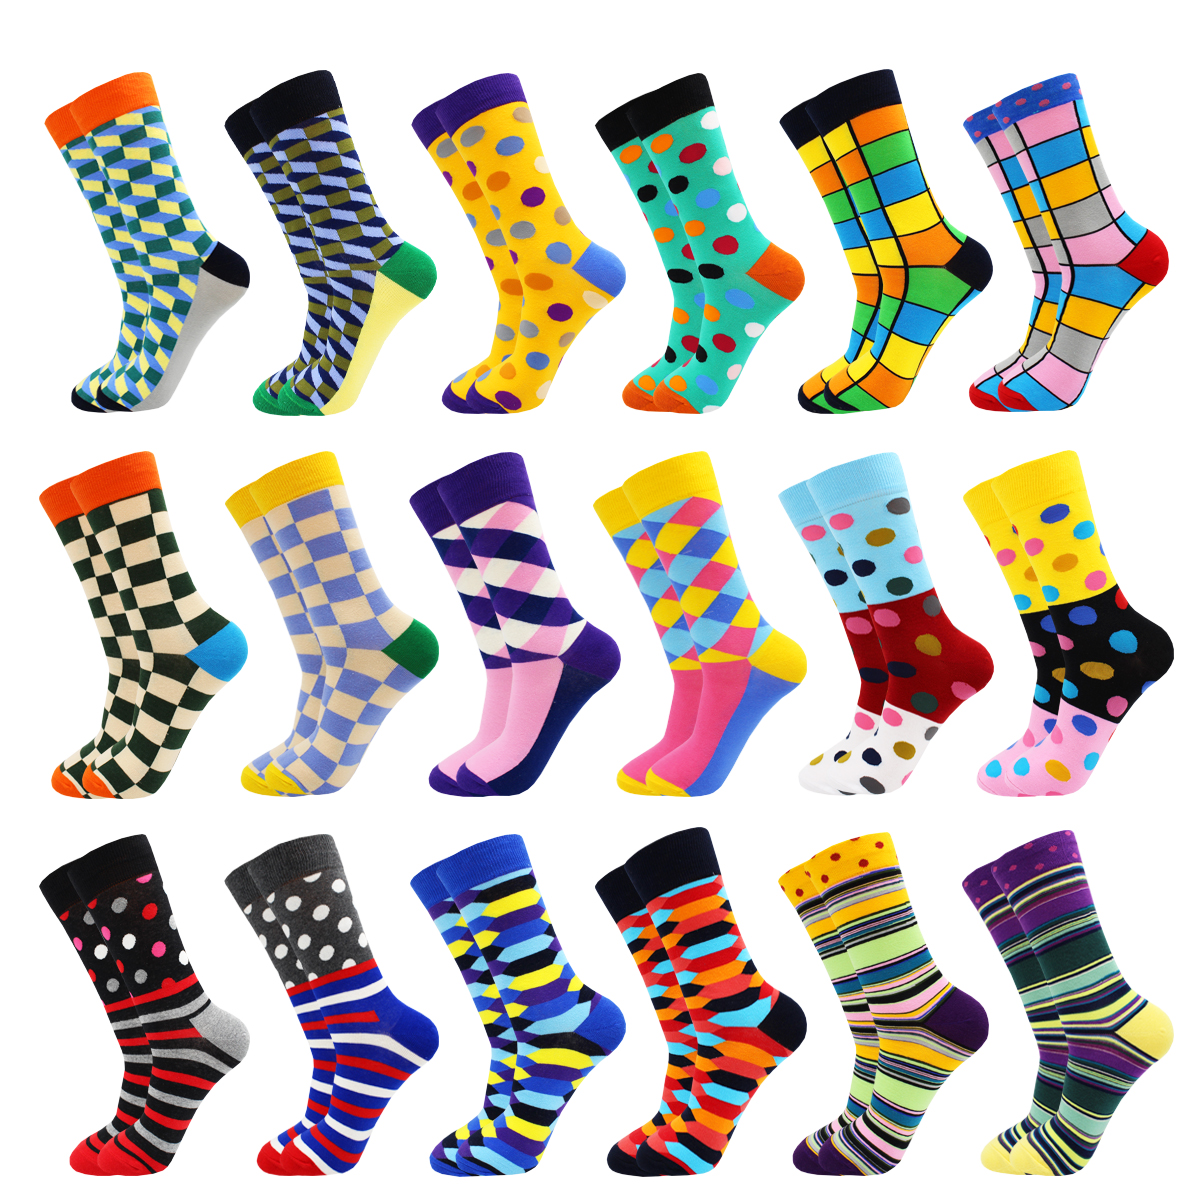 Colorful Novelty Fashion Stripe Cotton Mens Socks Hip Hop Happy Kawaii Dot Plaid Sloth Animal Food Pink  Funny Casual Socks Men